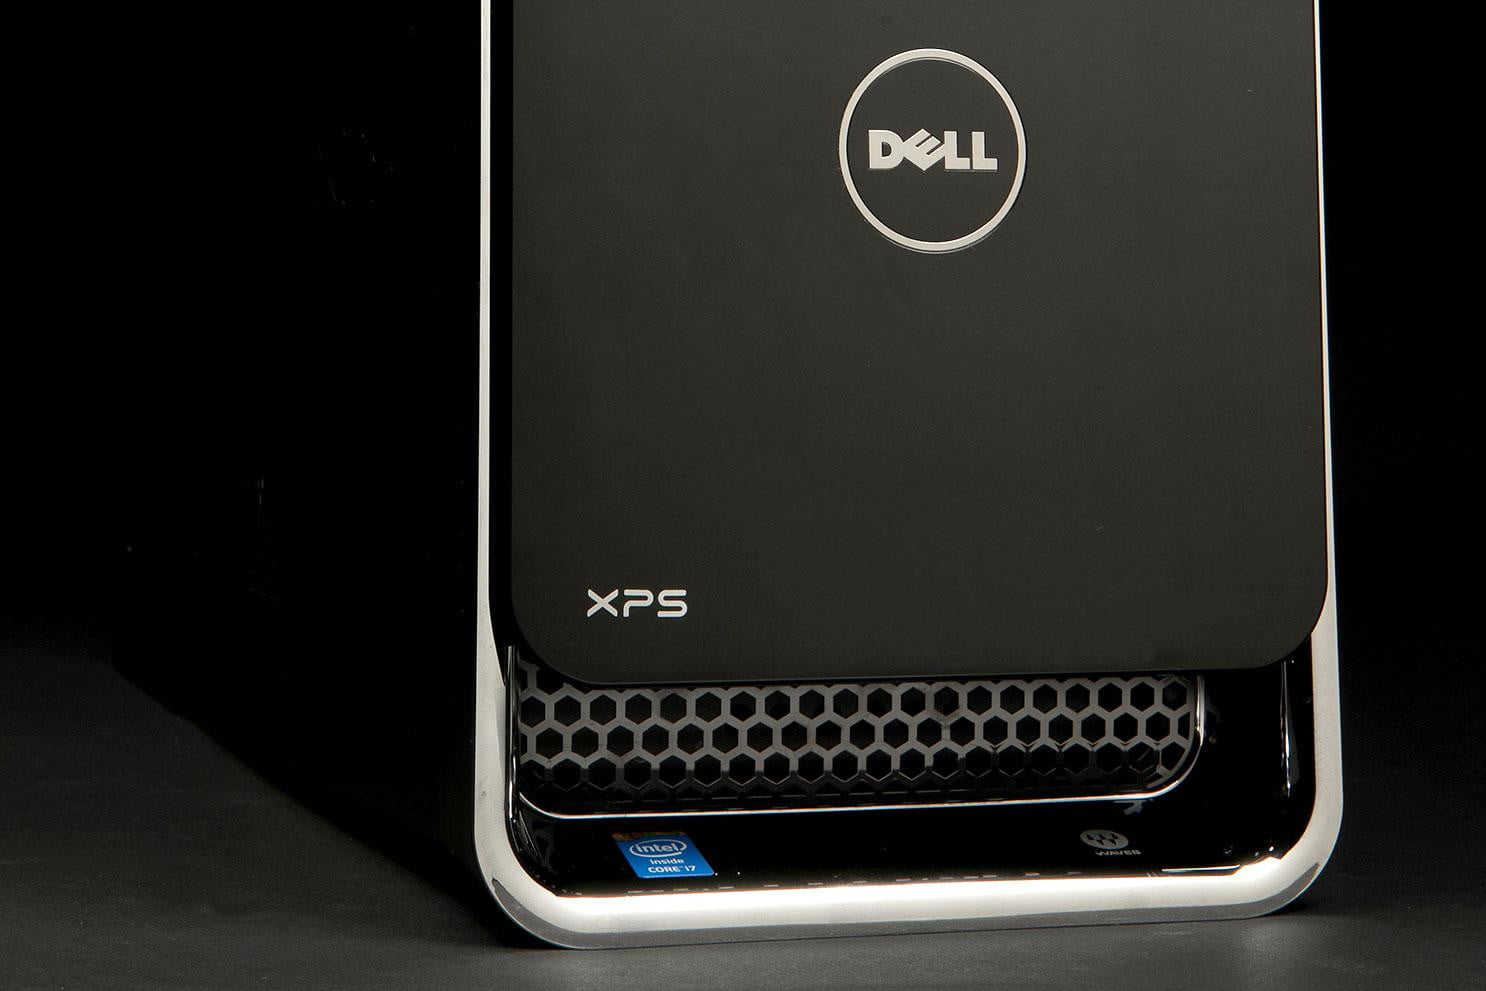 11376219 Dell Xps 8930 Se Desktop I7 8700 16gb Ddr4 512gb Pcie Ssd Gtx 1080 Dvd Rw 460w Psu Win10h 1421 F S moreover Dell Announces Xps 11 Enhancements To Pcs At  putex moreover Dell xps 8500 review small size big performance additionally Toshiba Motherboard Diagram additionally Dell Xps 8700 Review. on dell xps 8700 ports